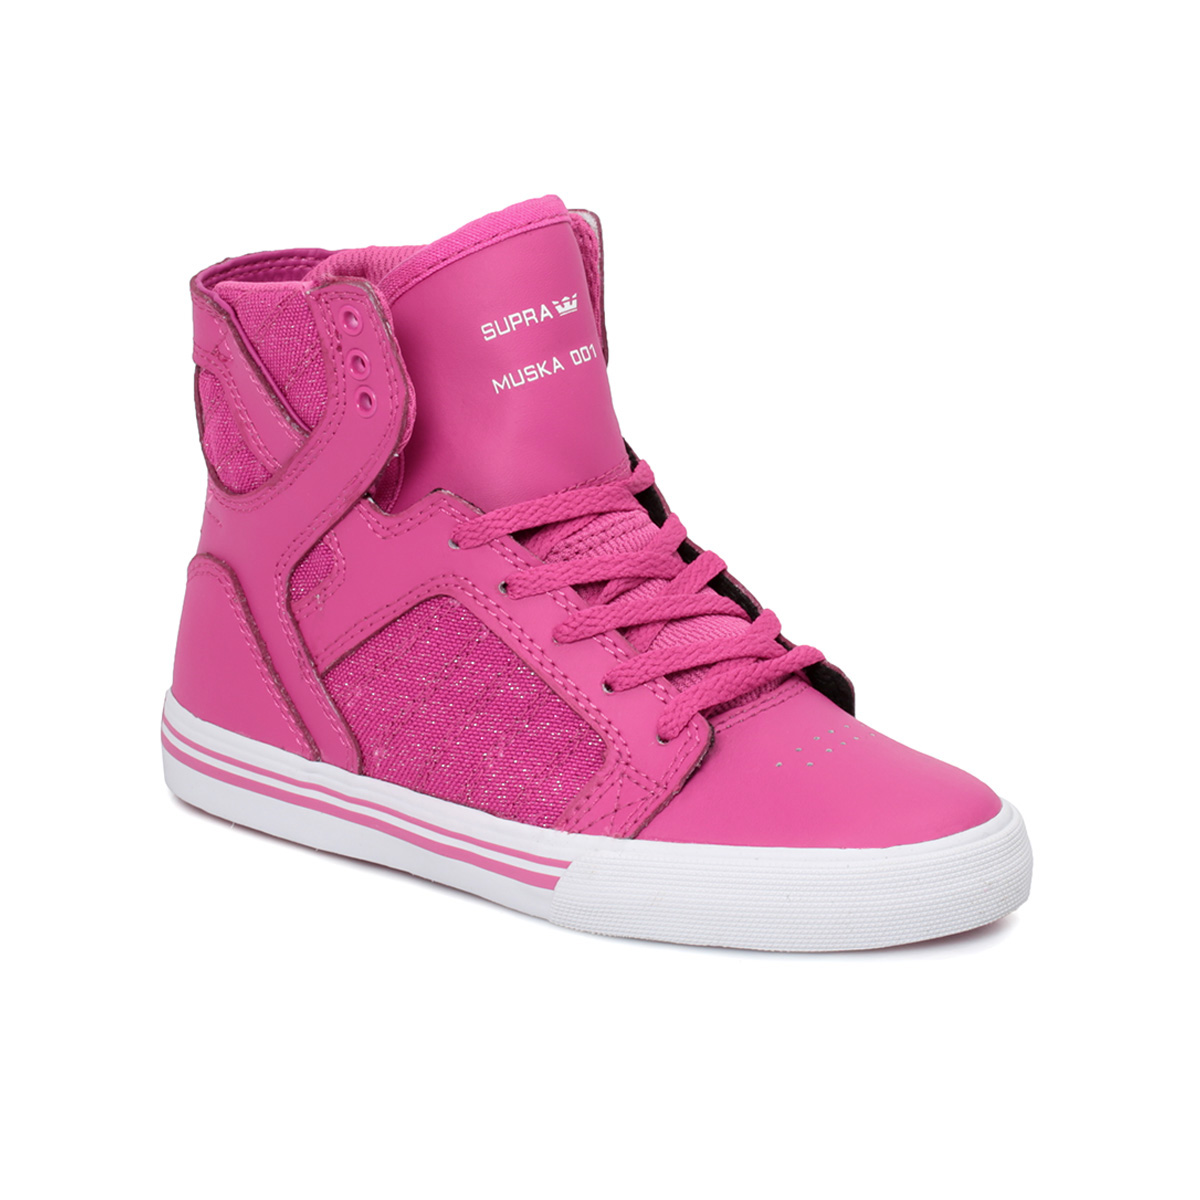 supra junior skytop pink hi top kids shoes trainers size